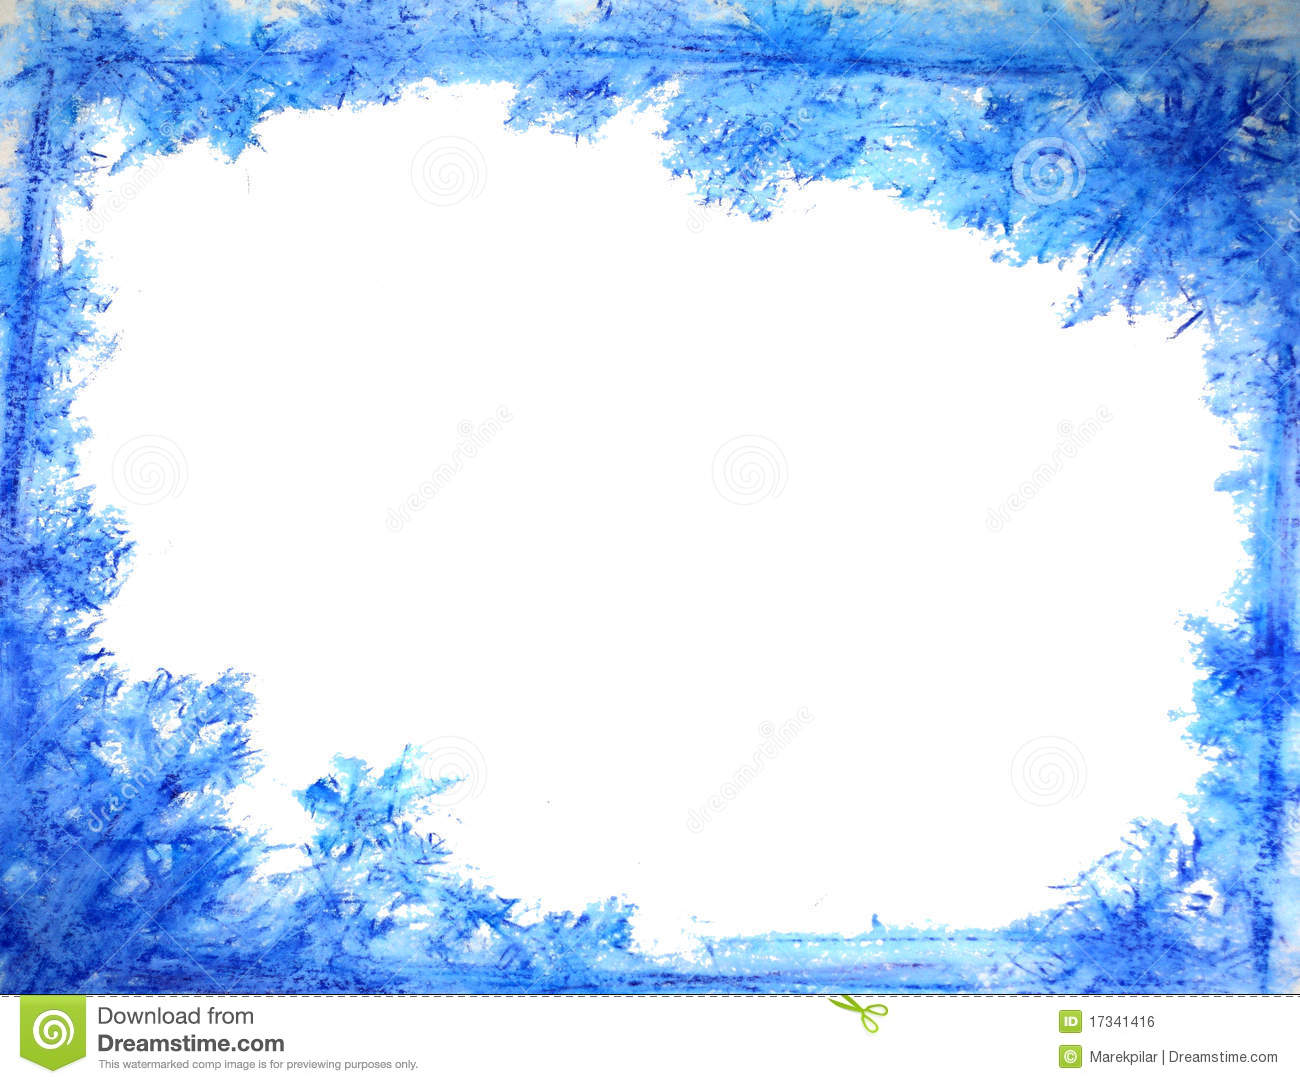 Winter Frame Royalty Free Stock Image - Image: 17341416